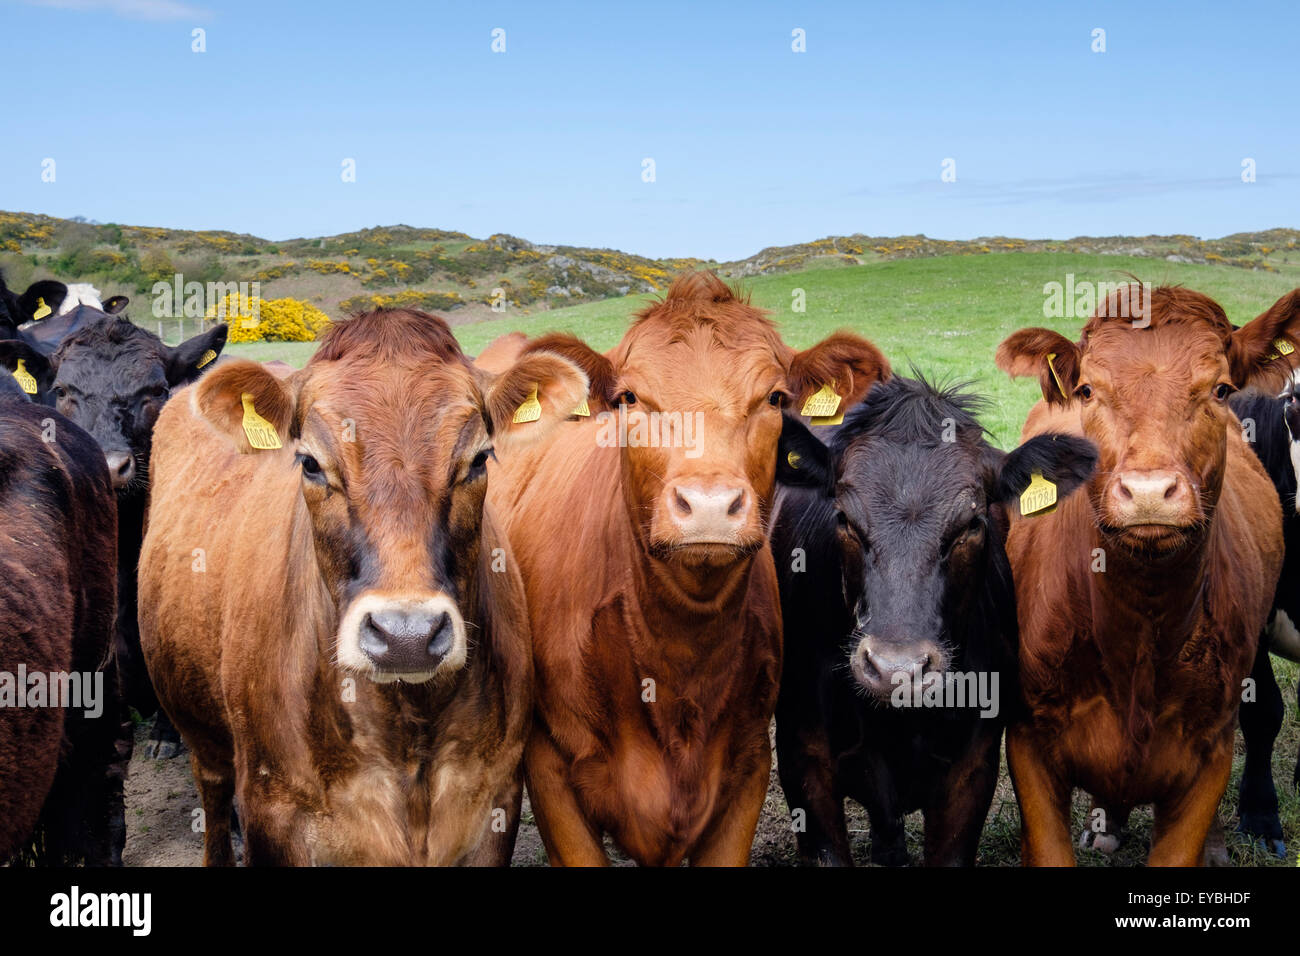 Inquisitive young bulls Bos taurus (cattle) with ear tags in a field. Rhydwyn, Isle of Anglesey, North Wales, UK, - Stock Image